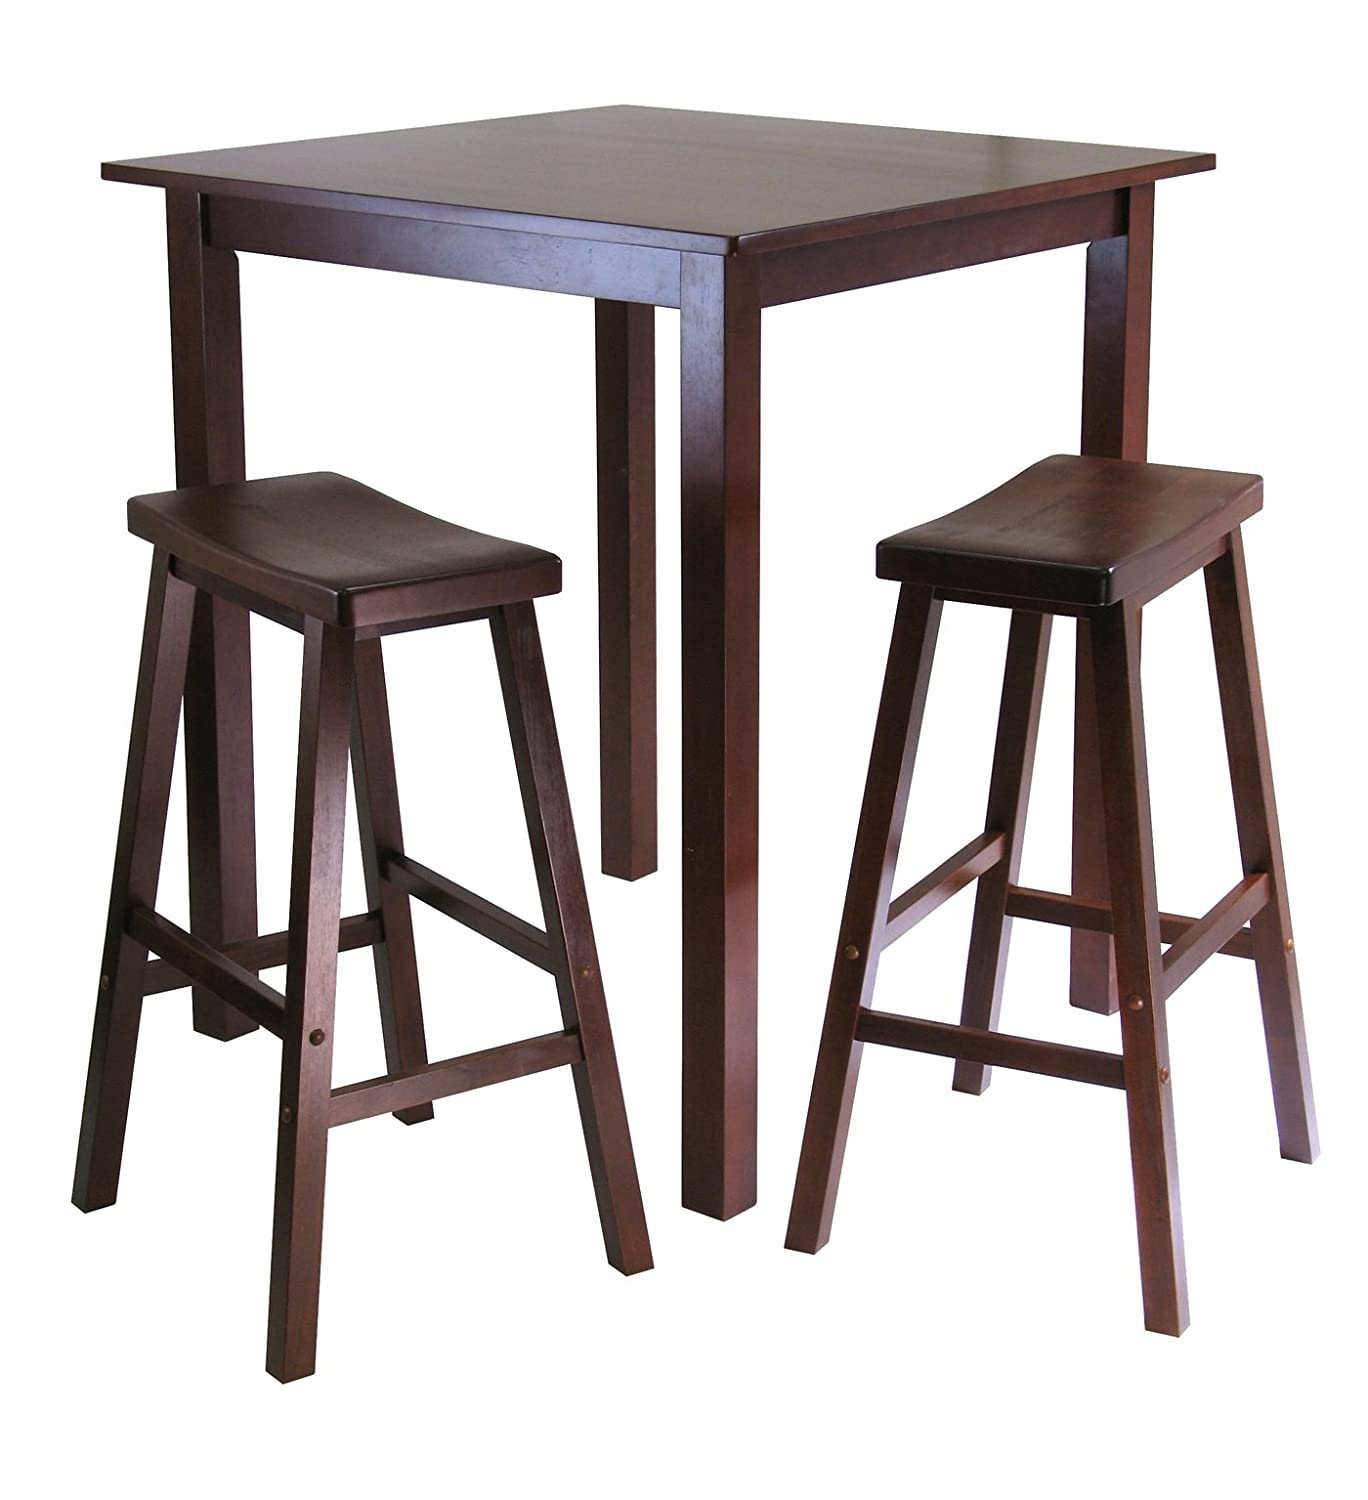 amazon com winsomes parkland 3 piece square high pub table set